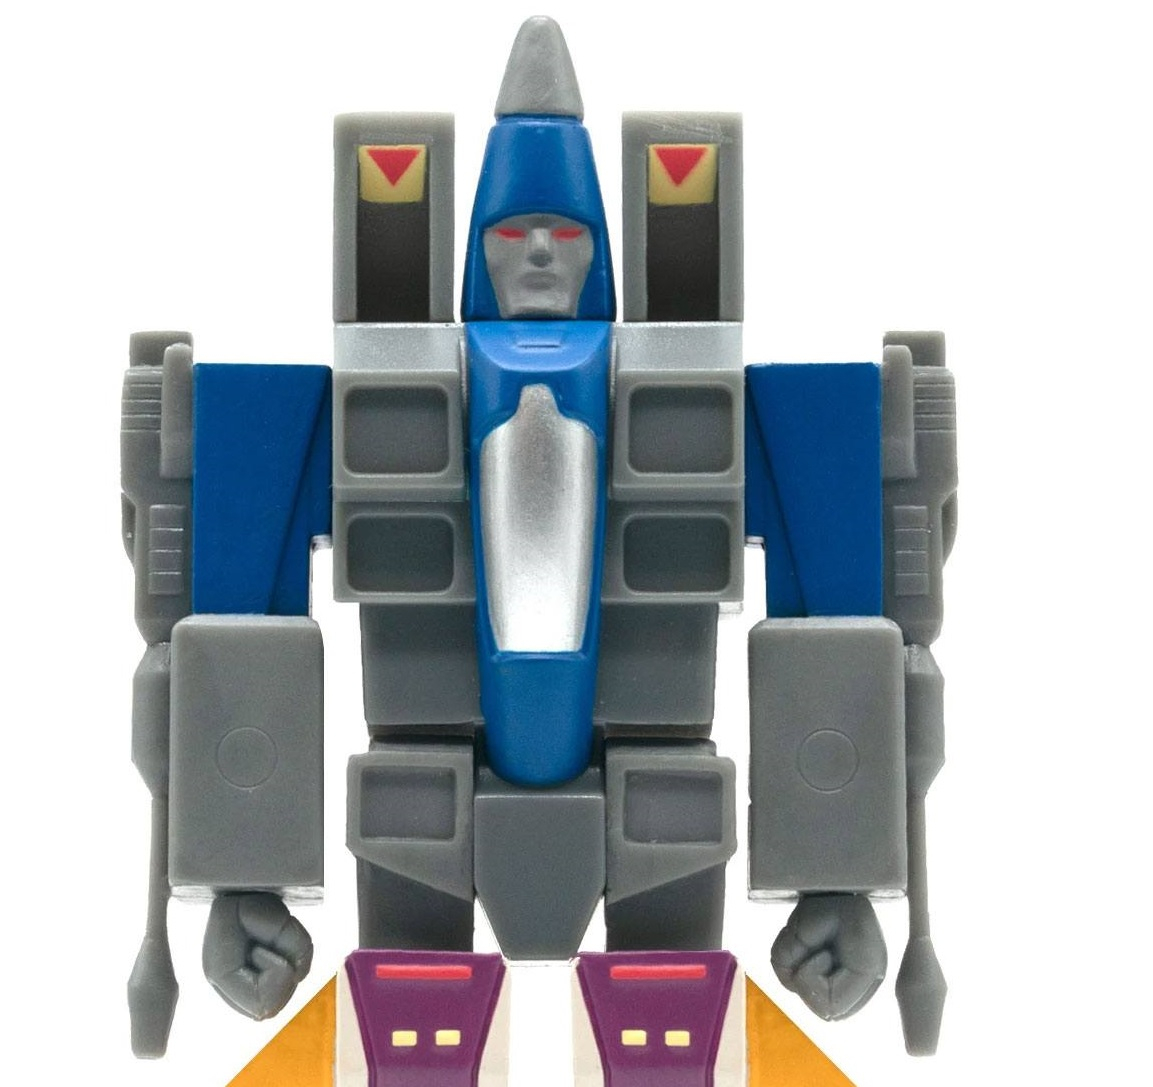 *PREORDER* Transformers ReAction Action Figure: DIRGE by Super7